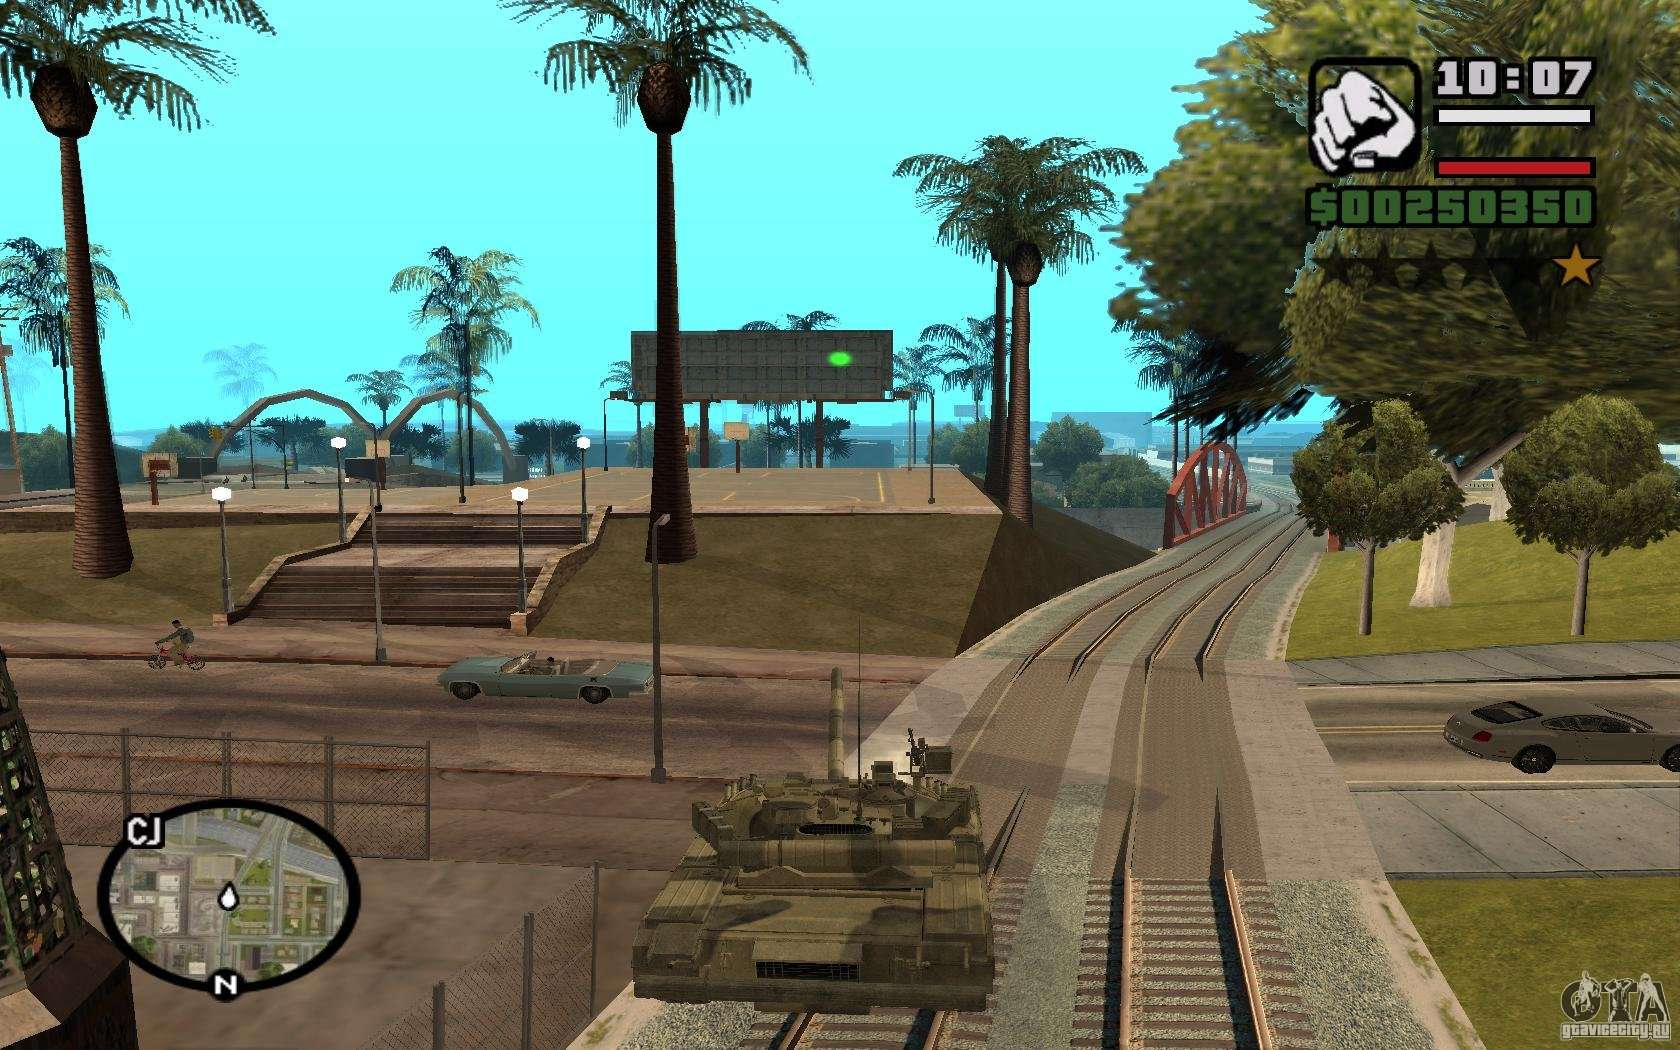 how to fly rocket man in gta san andreas